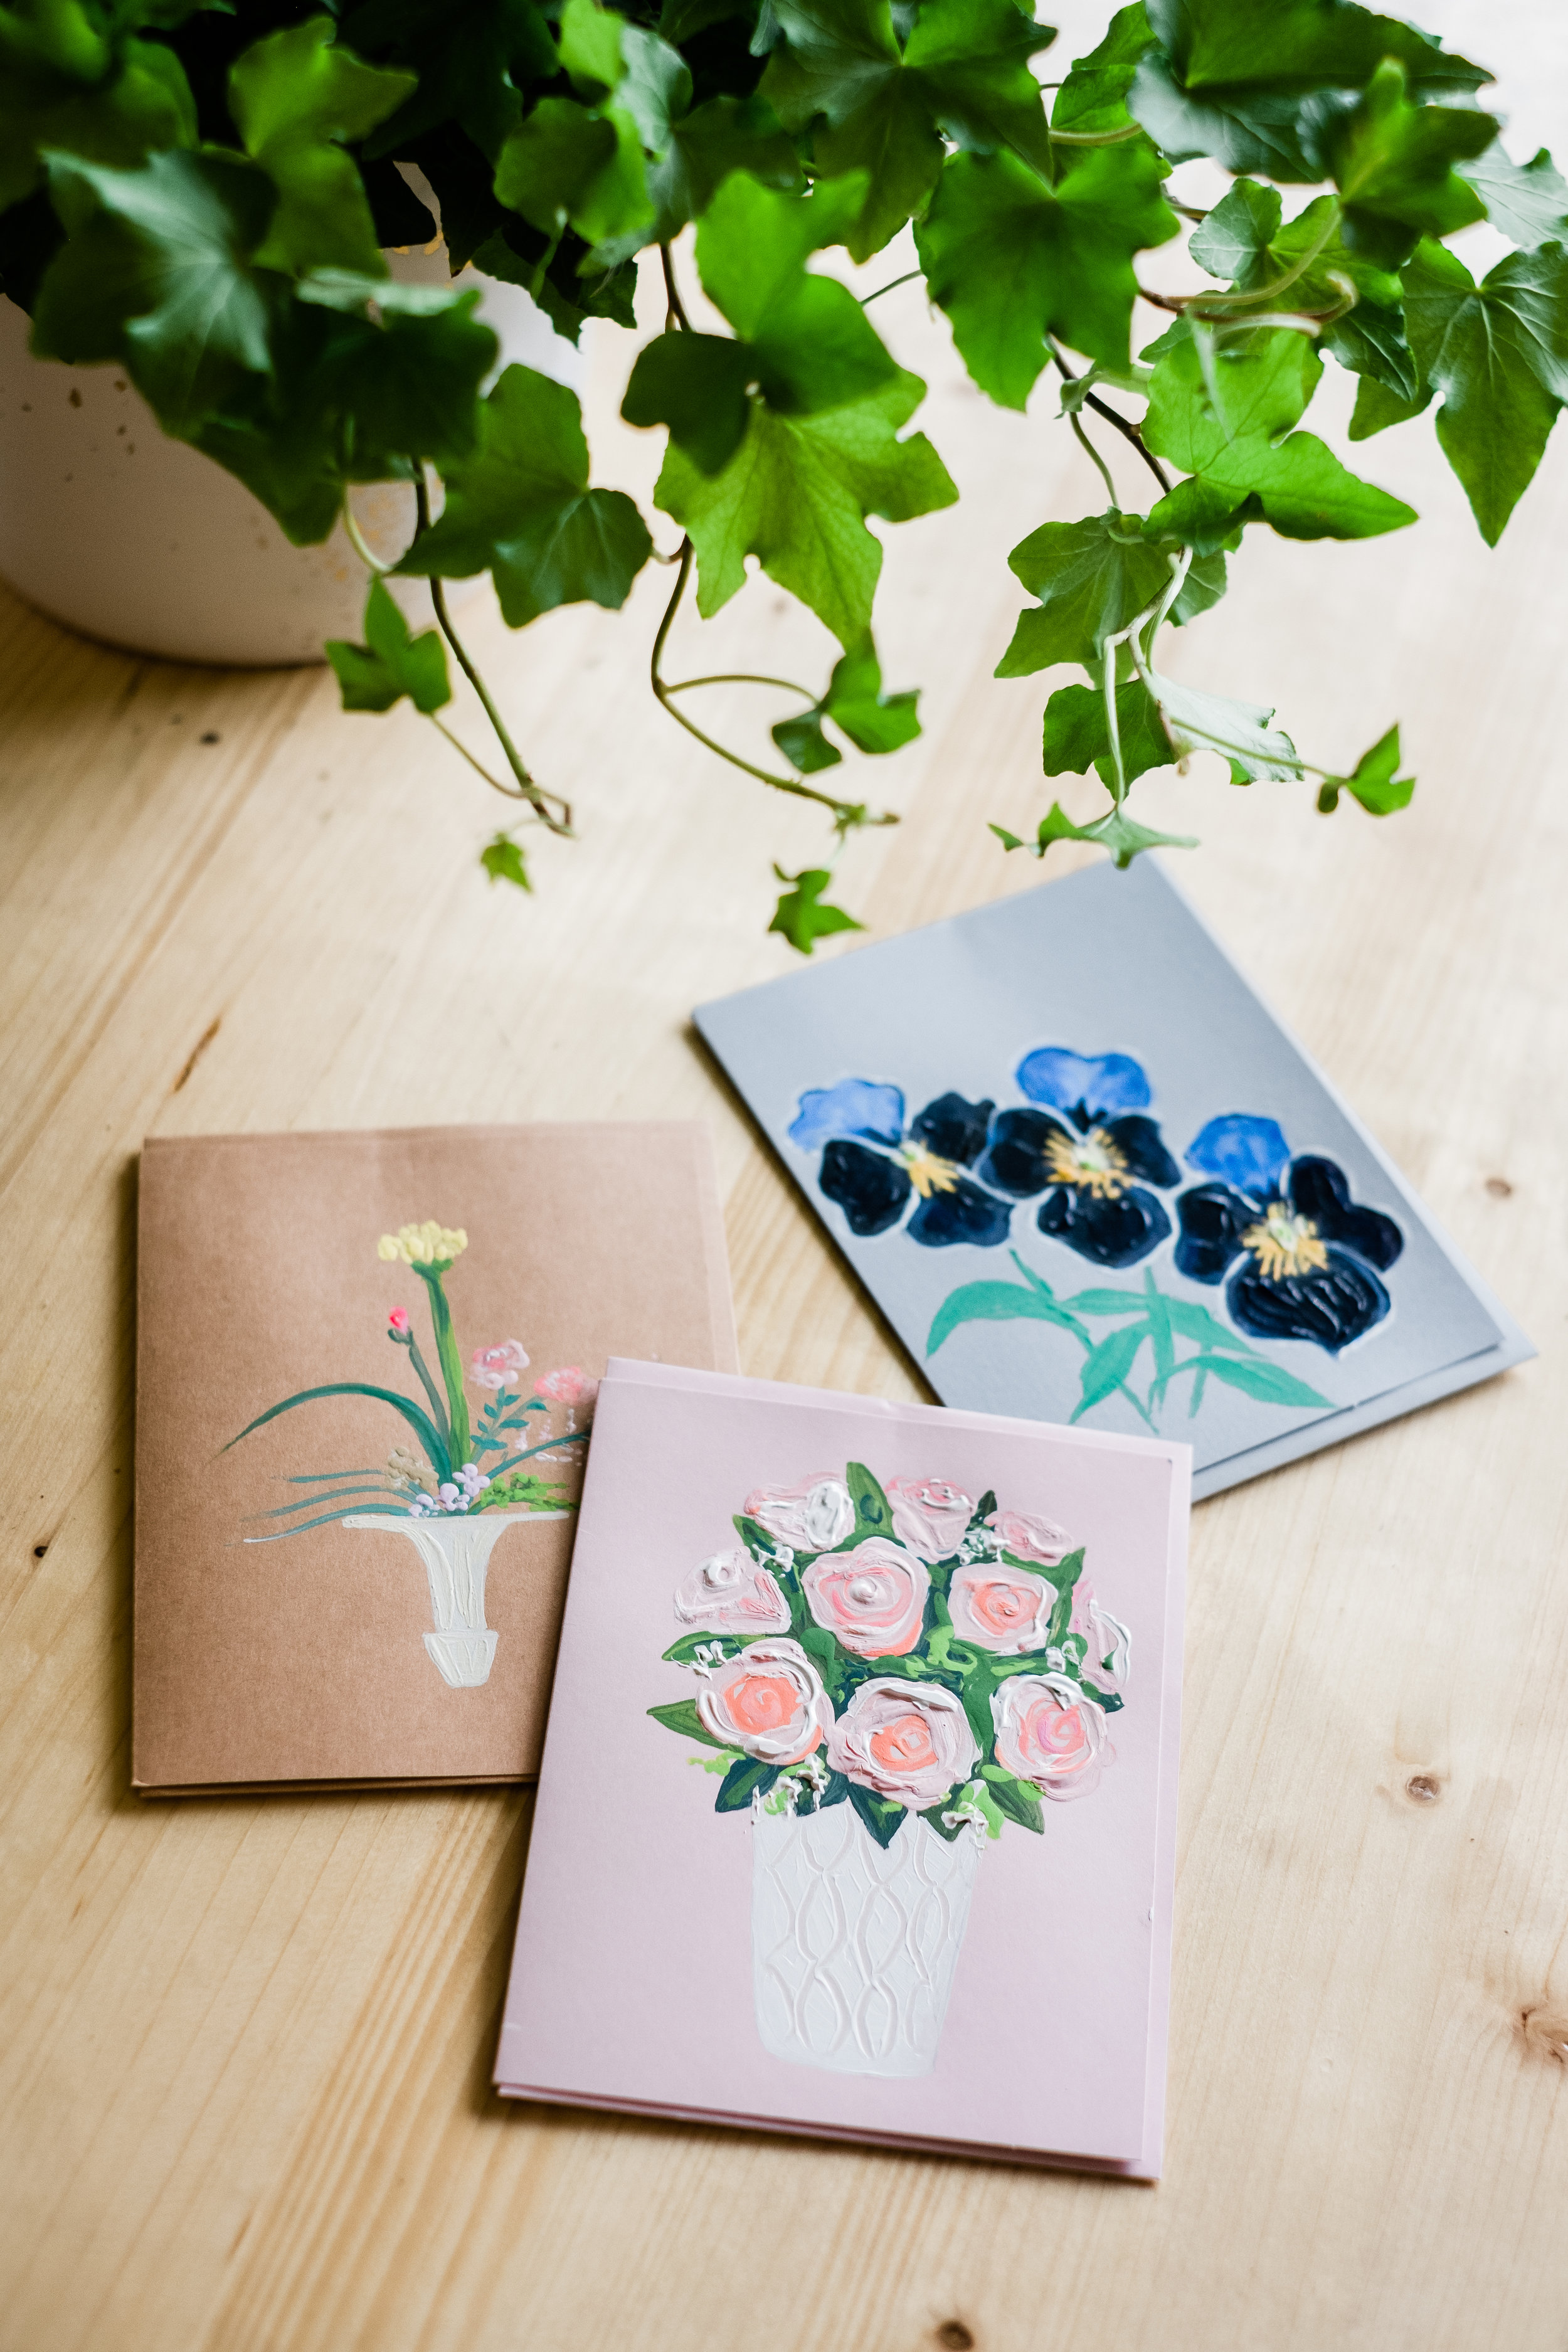 Hand Painted Cards - $10